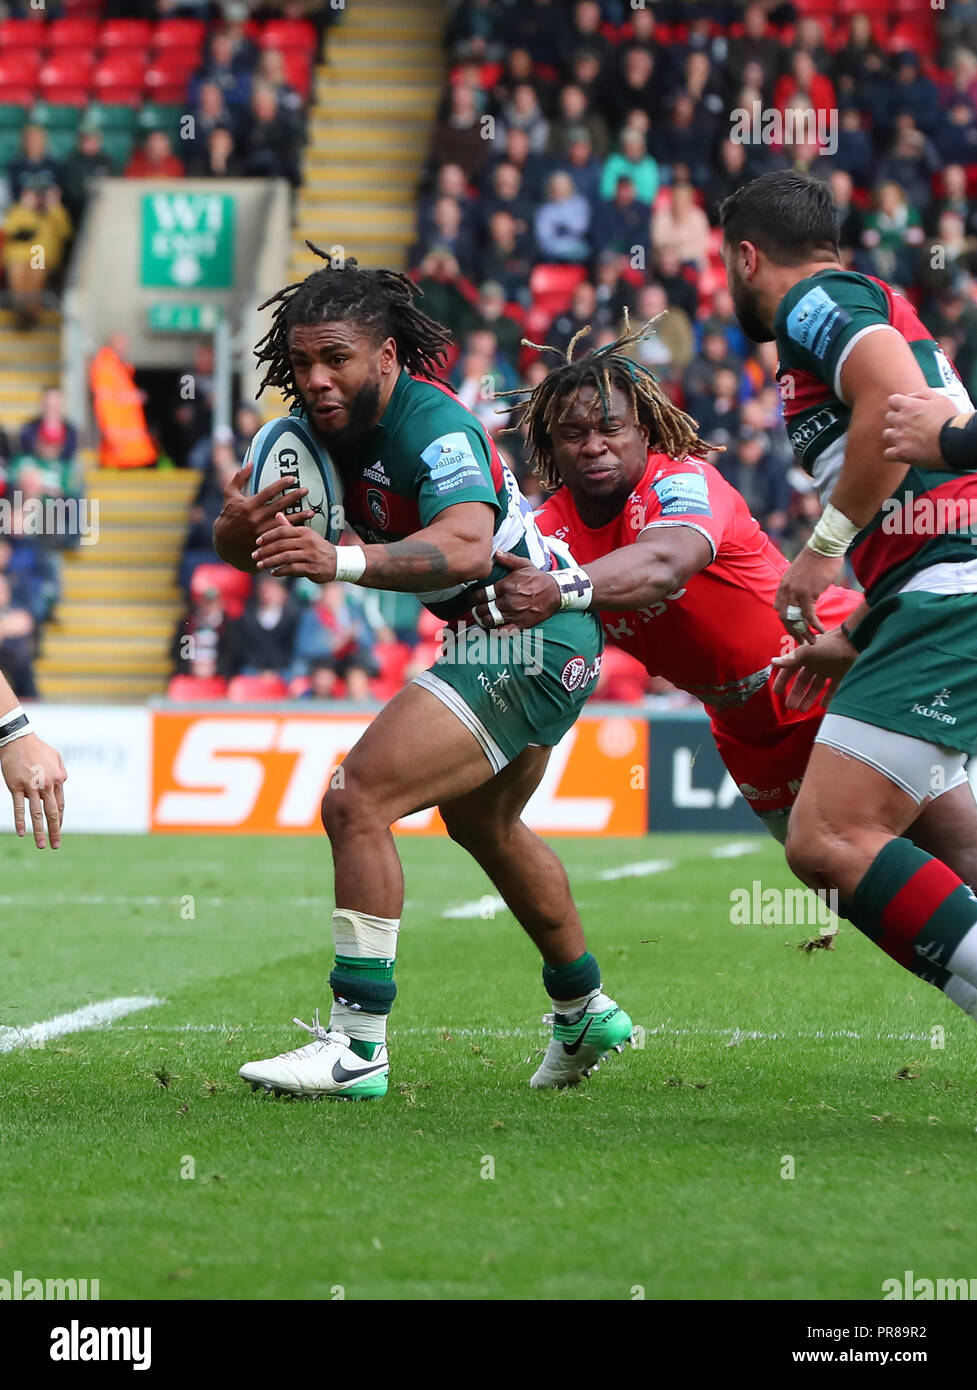 Leicester, UK. 30 September 2018.   Kyle Eastmond (Leicester Tigers) is tackled by Marland Yarde (Sale Sharks) during the Gallagher Premiership Rugby match played between Leicester Tigers and Sale Shards rfc at the Welford Road Stadium, Leicester.  © Phil Hutchinson/Alamy Live News - Stock Image